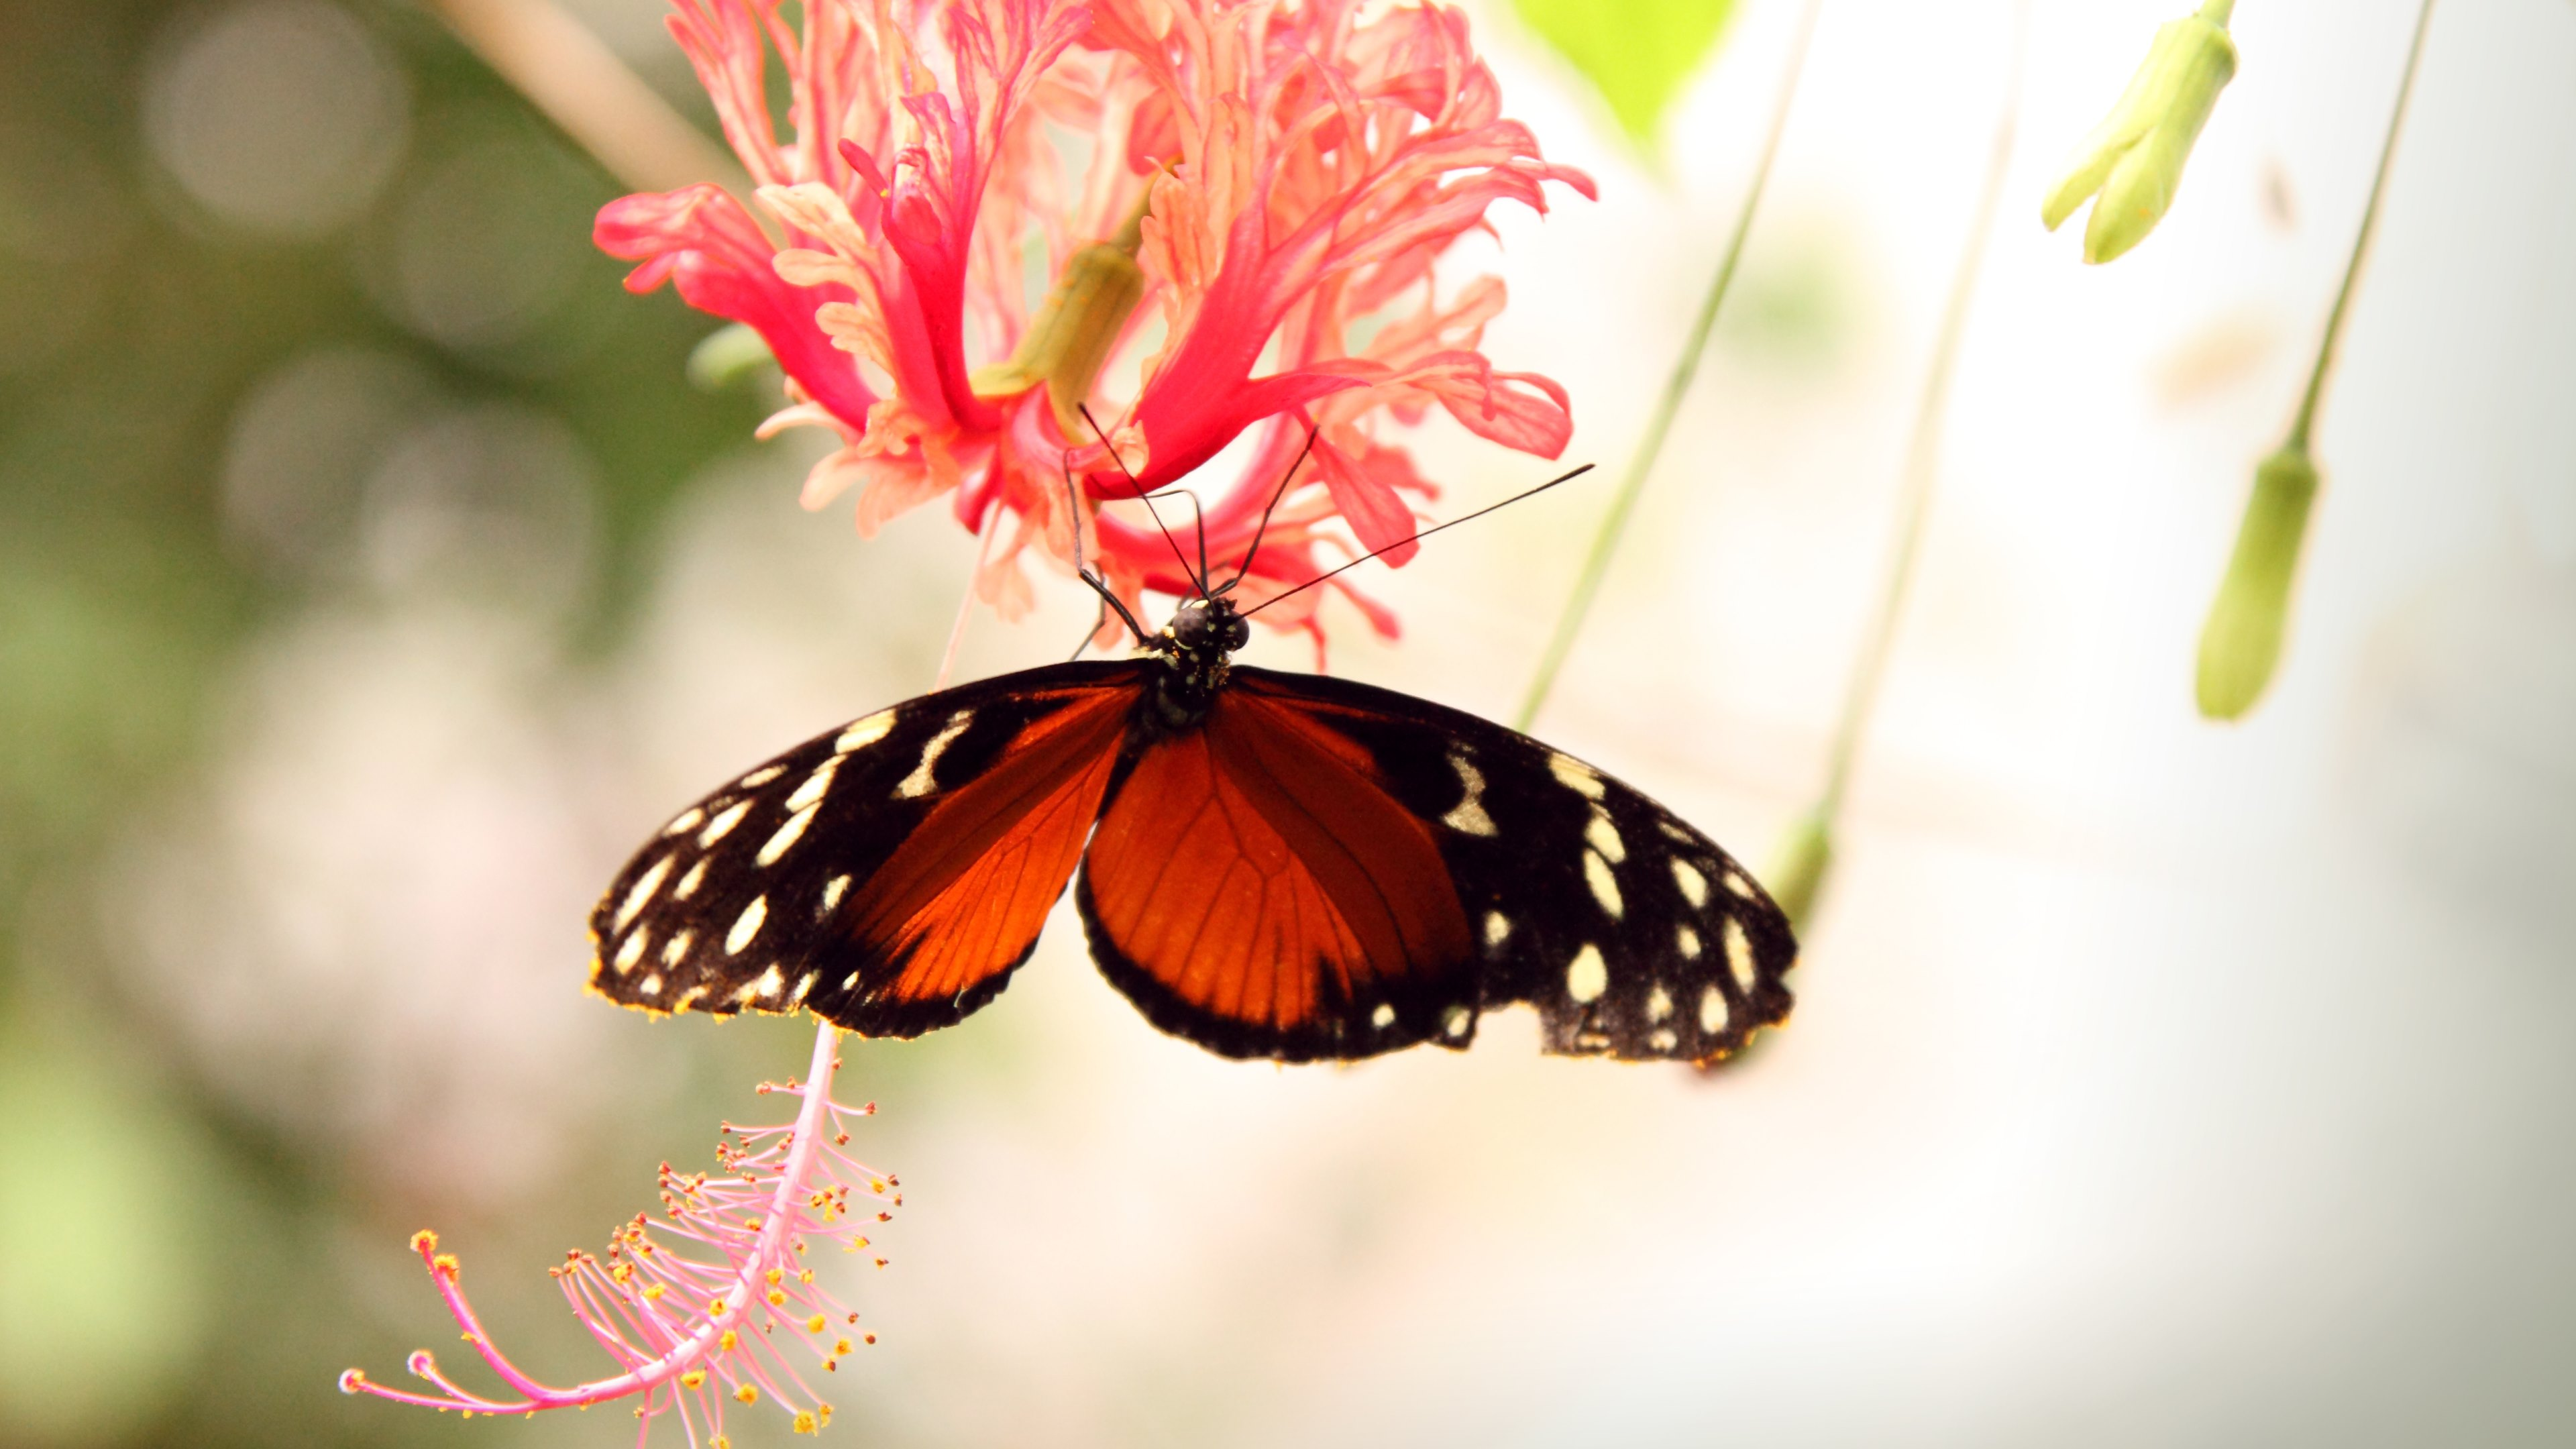 4k Butterfly Wallpapers High Quality Download Free